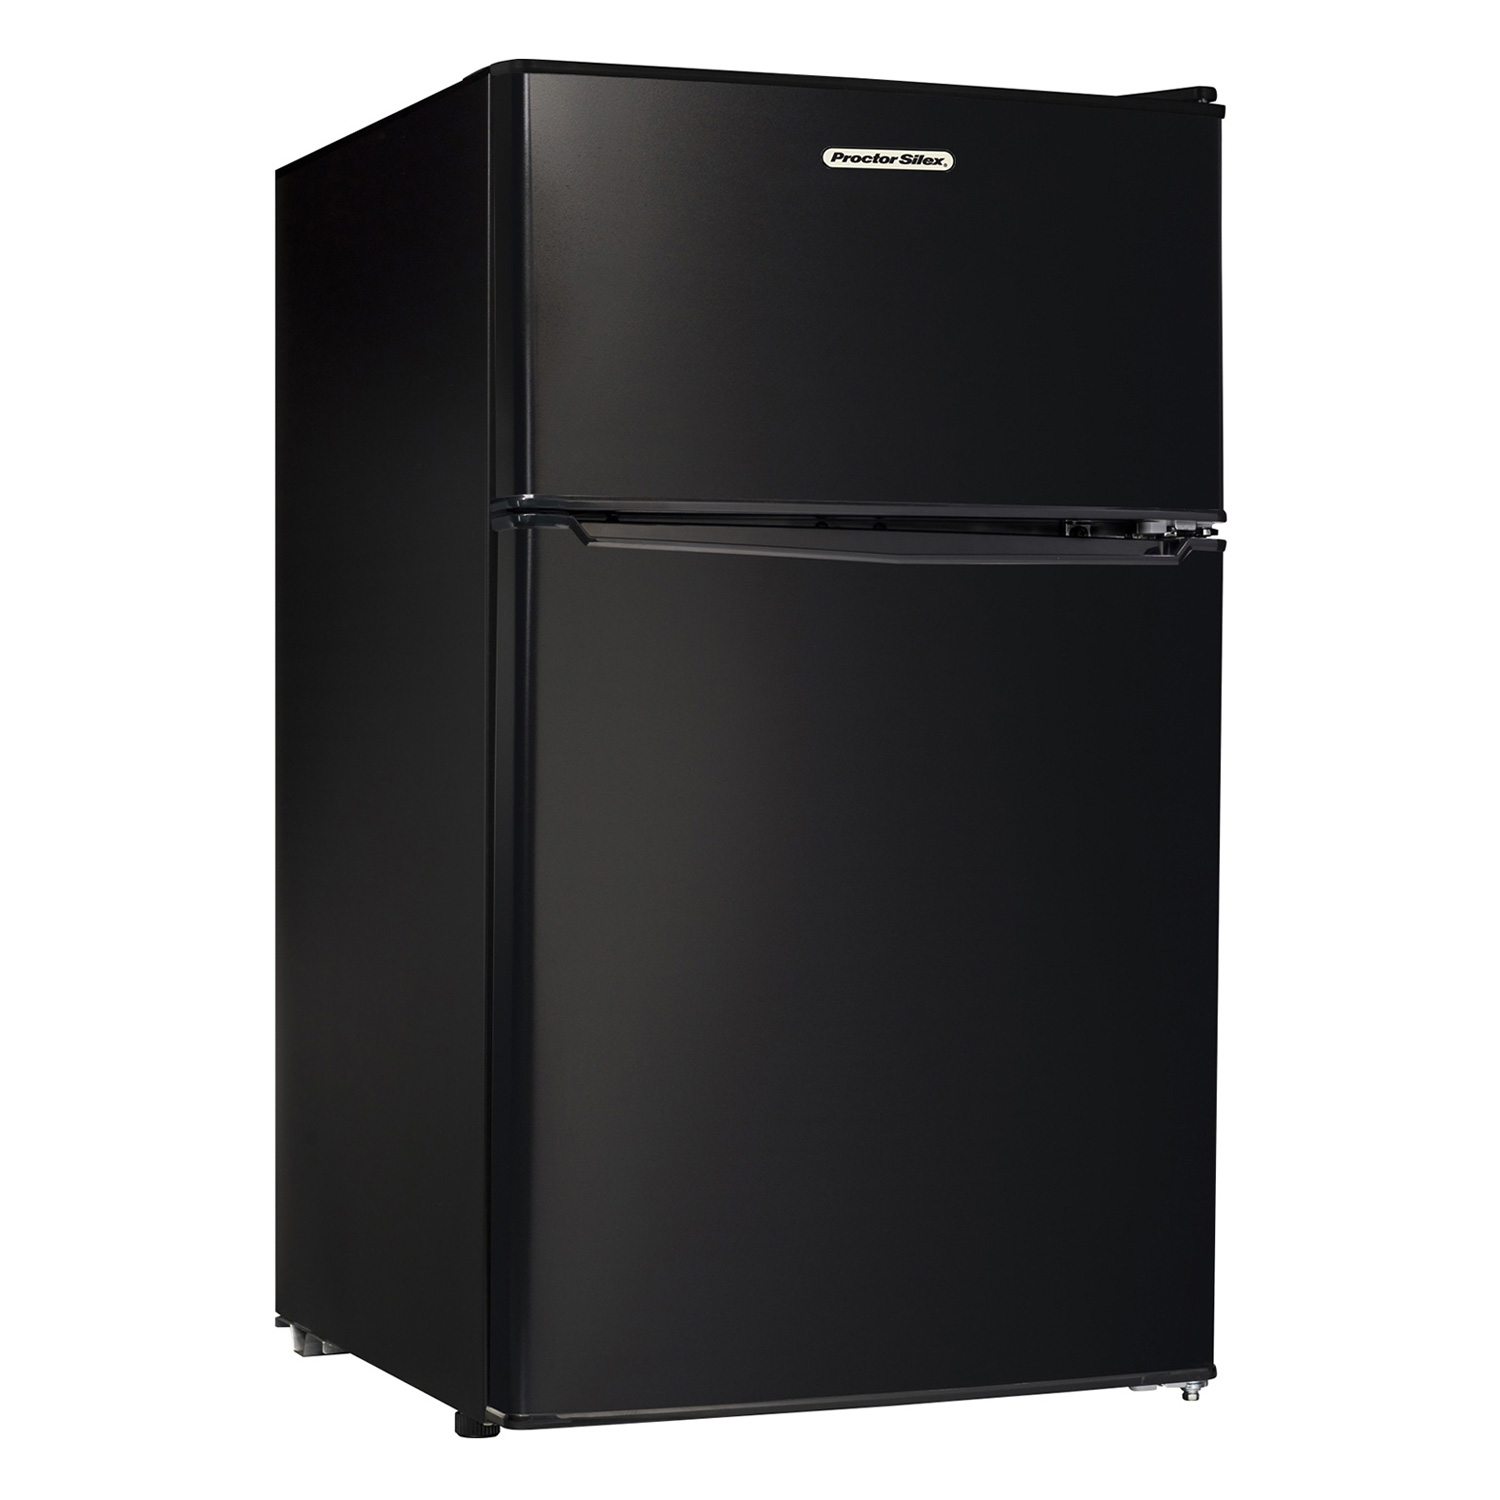 Compact Refrigerator with Reversible Double Door Top Mounted Freezer, 3.1 Cubic Feet, Black (86100)